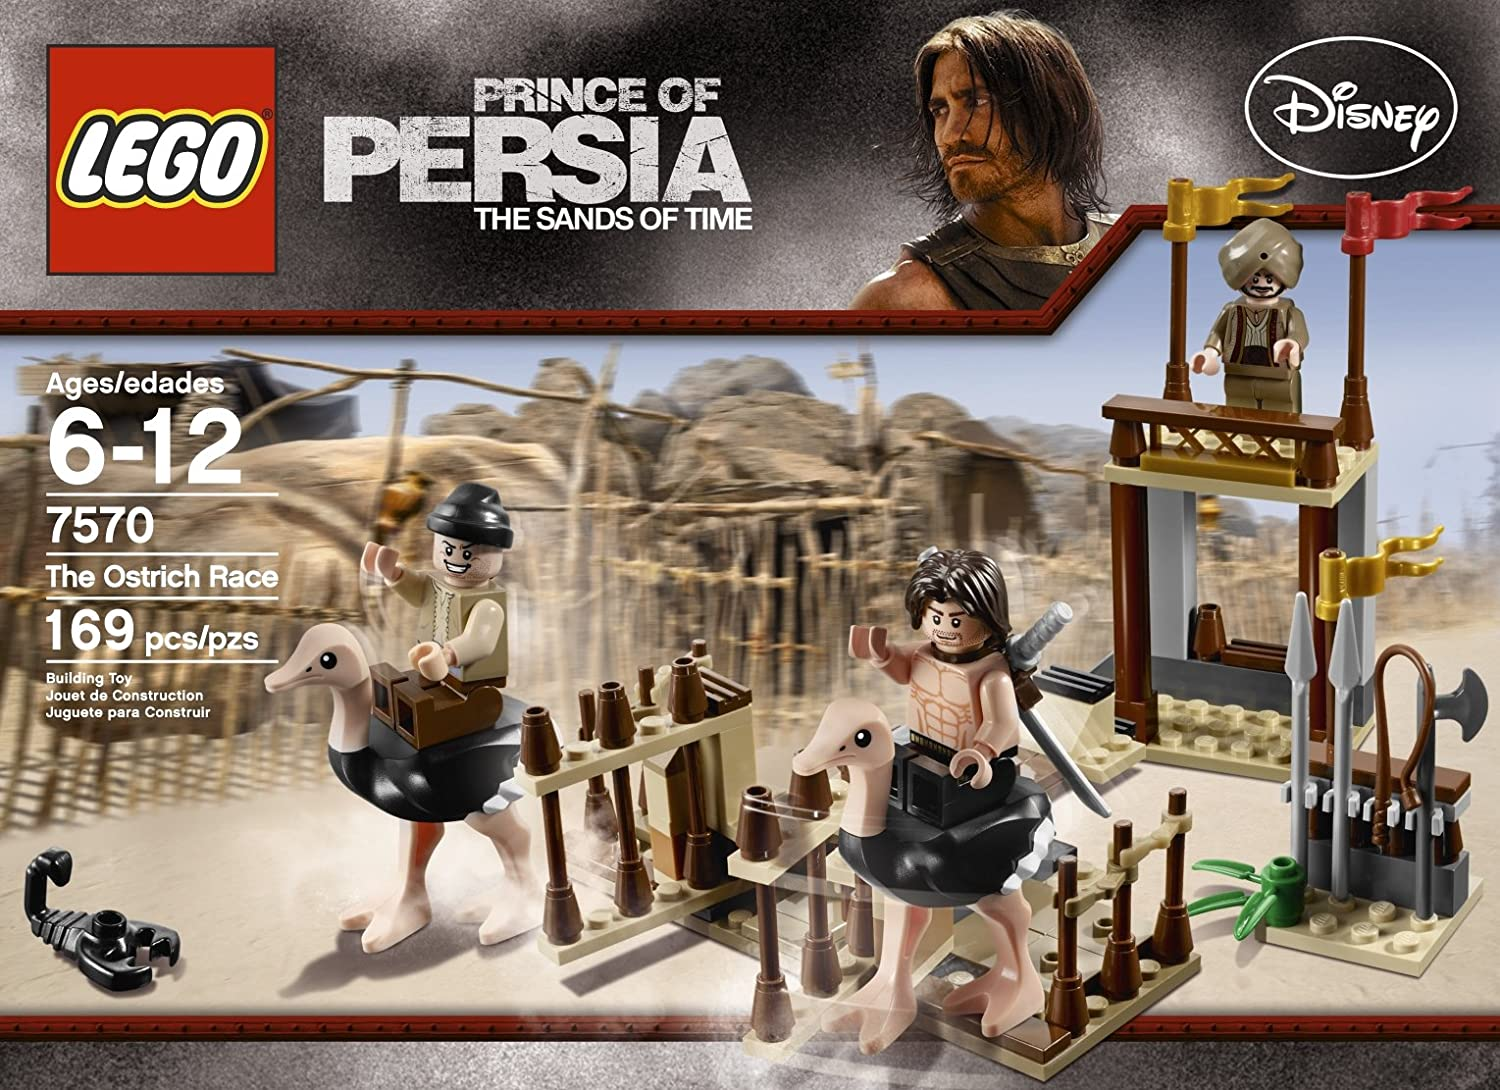 LEGO Disney Prince Of Persia The Sands Of Time 7570 The Ostrich Race